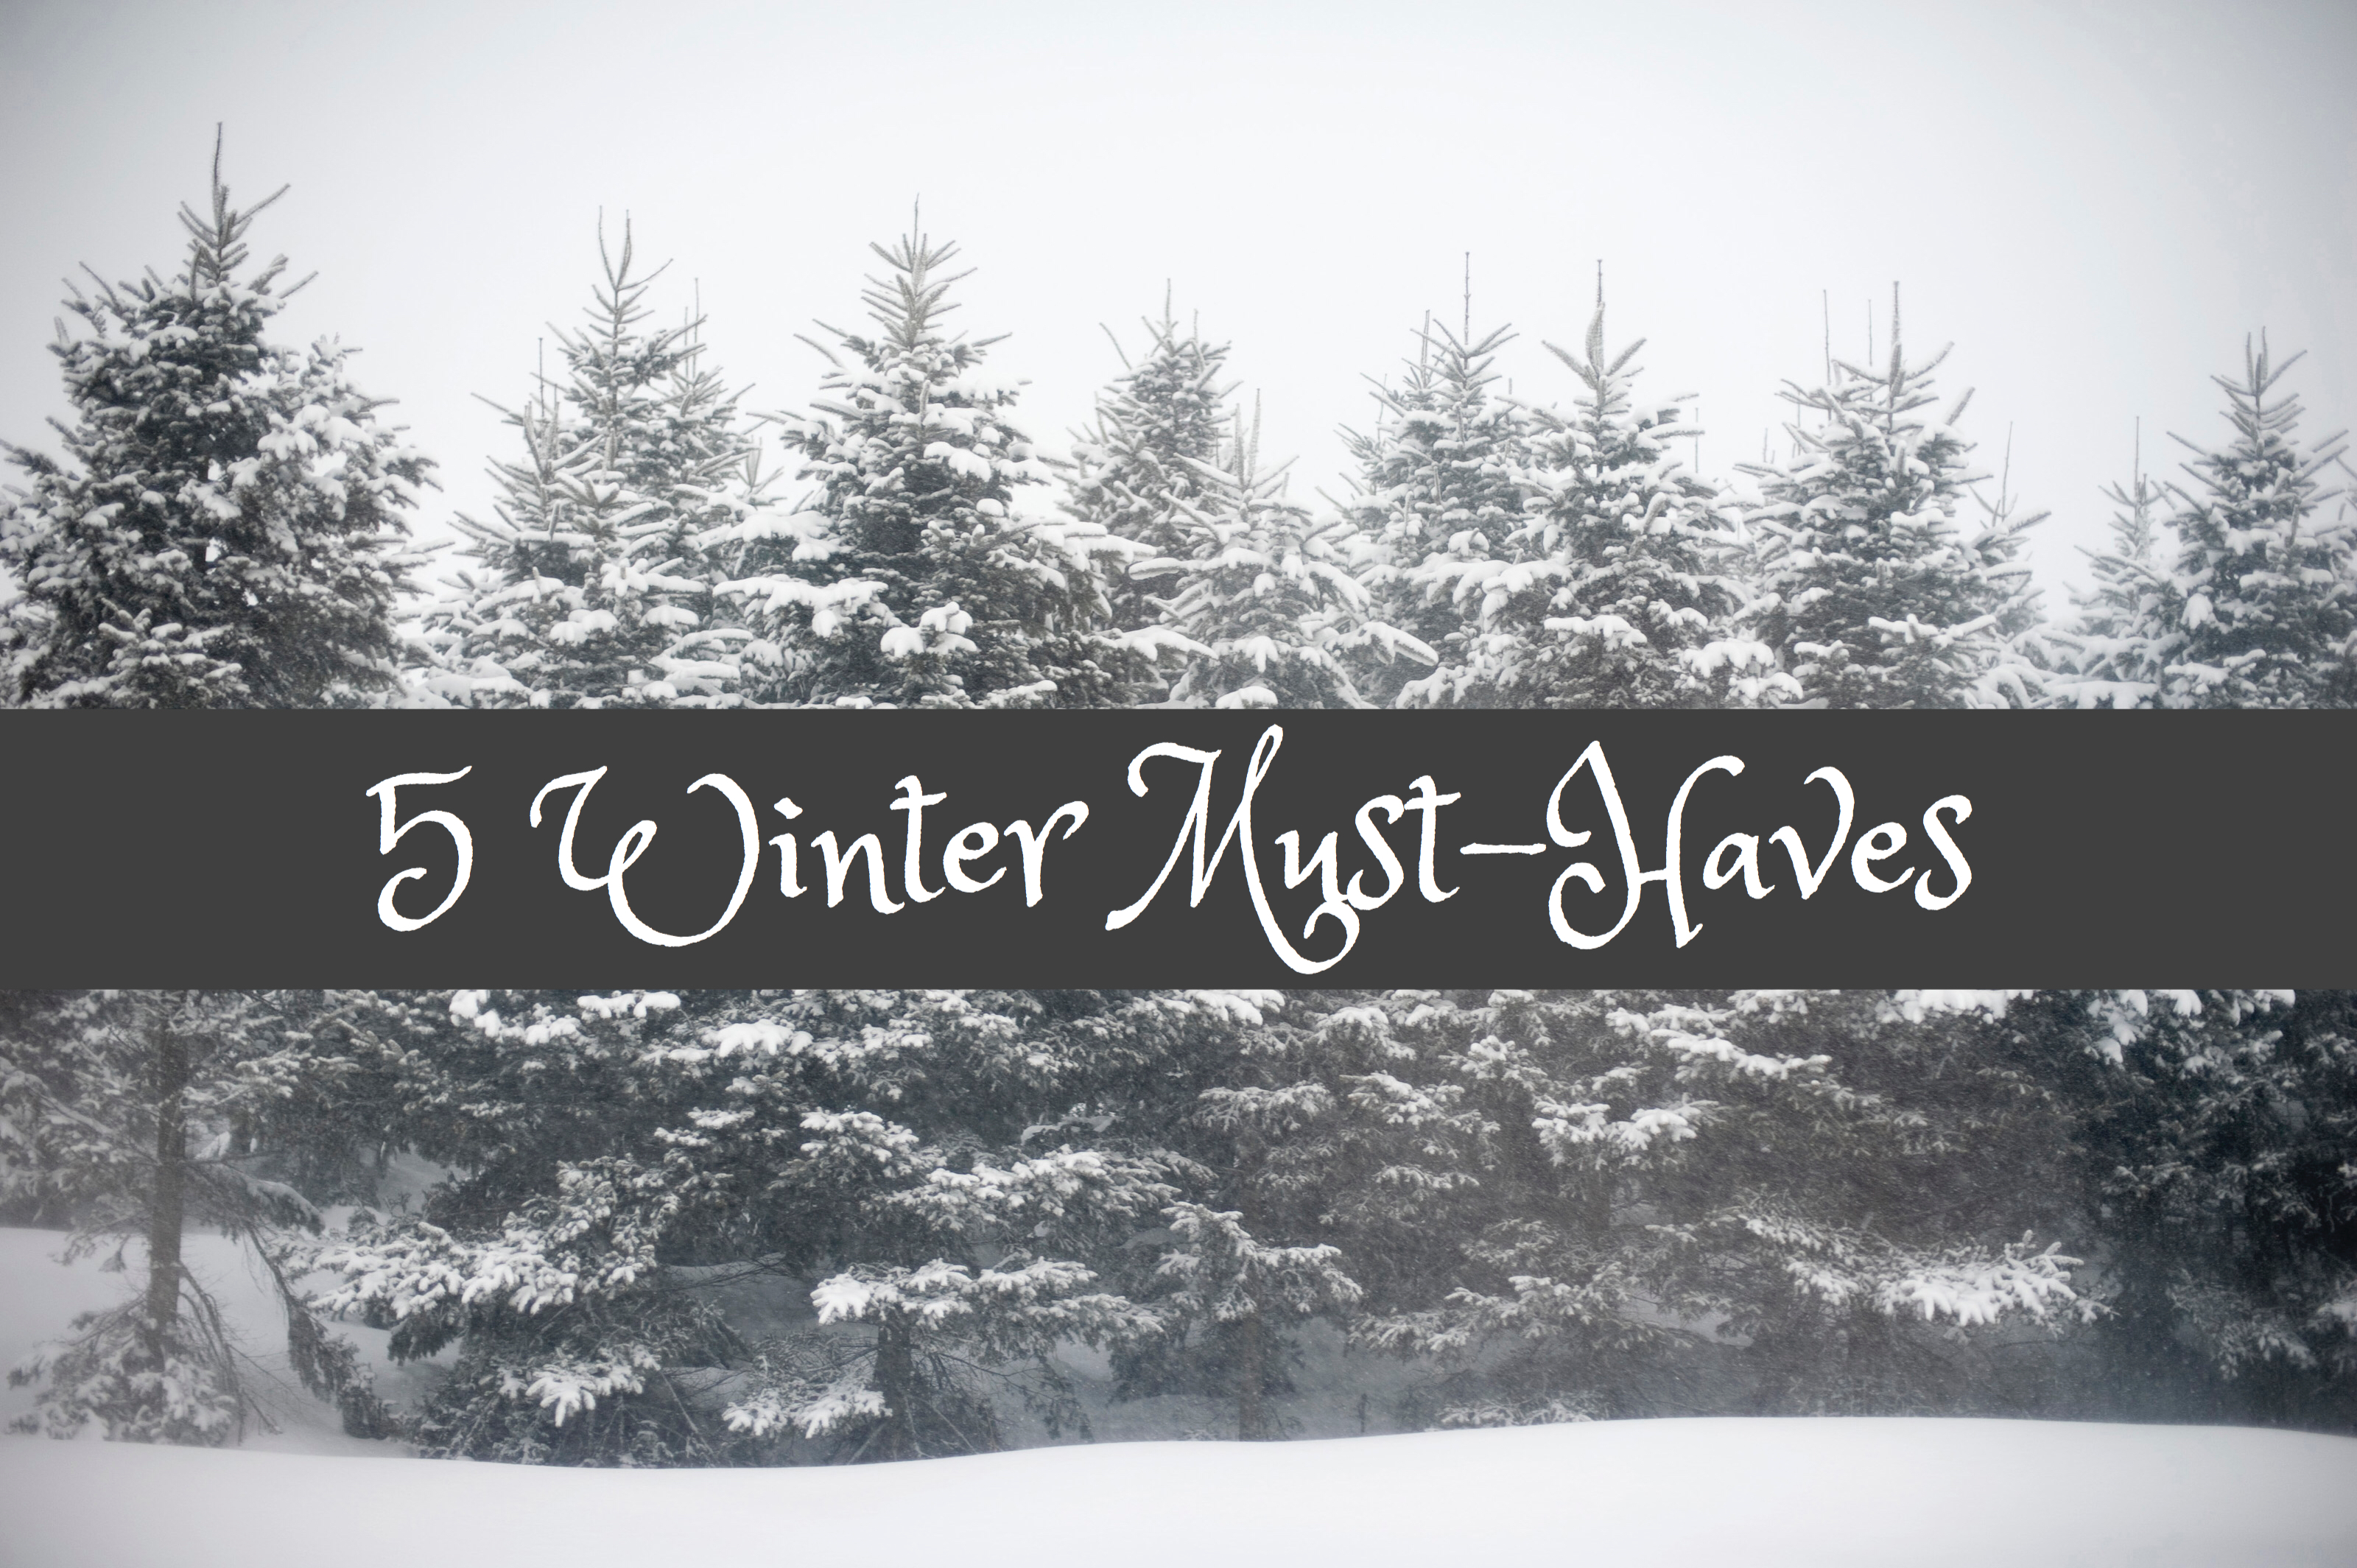 Blogmas Day 7: 5 Winter Must-Haves